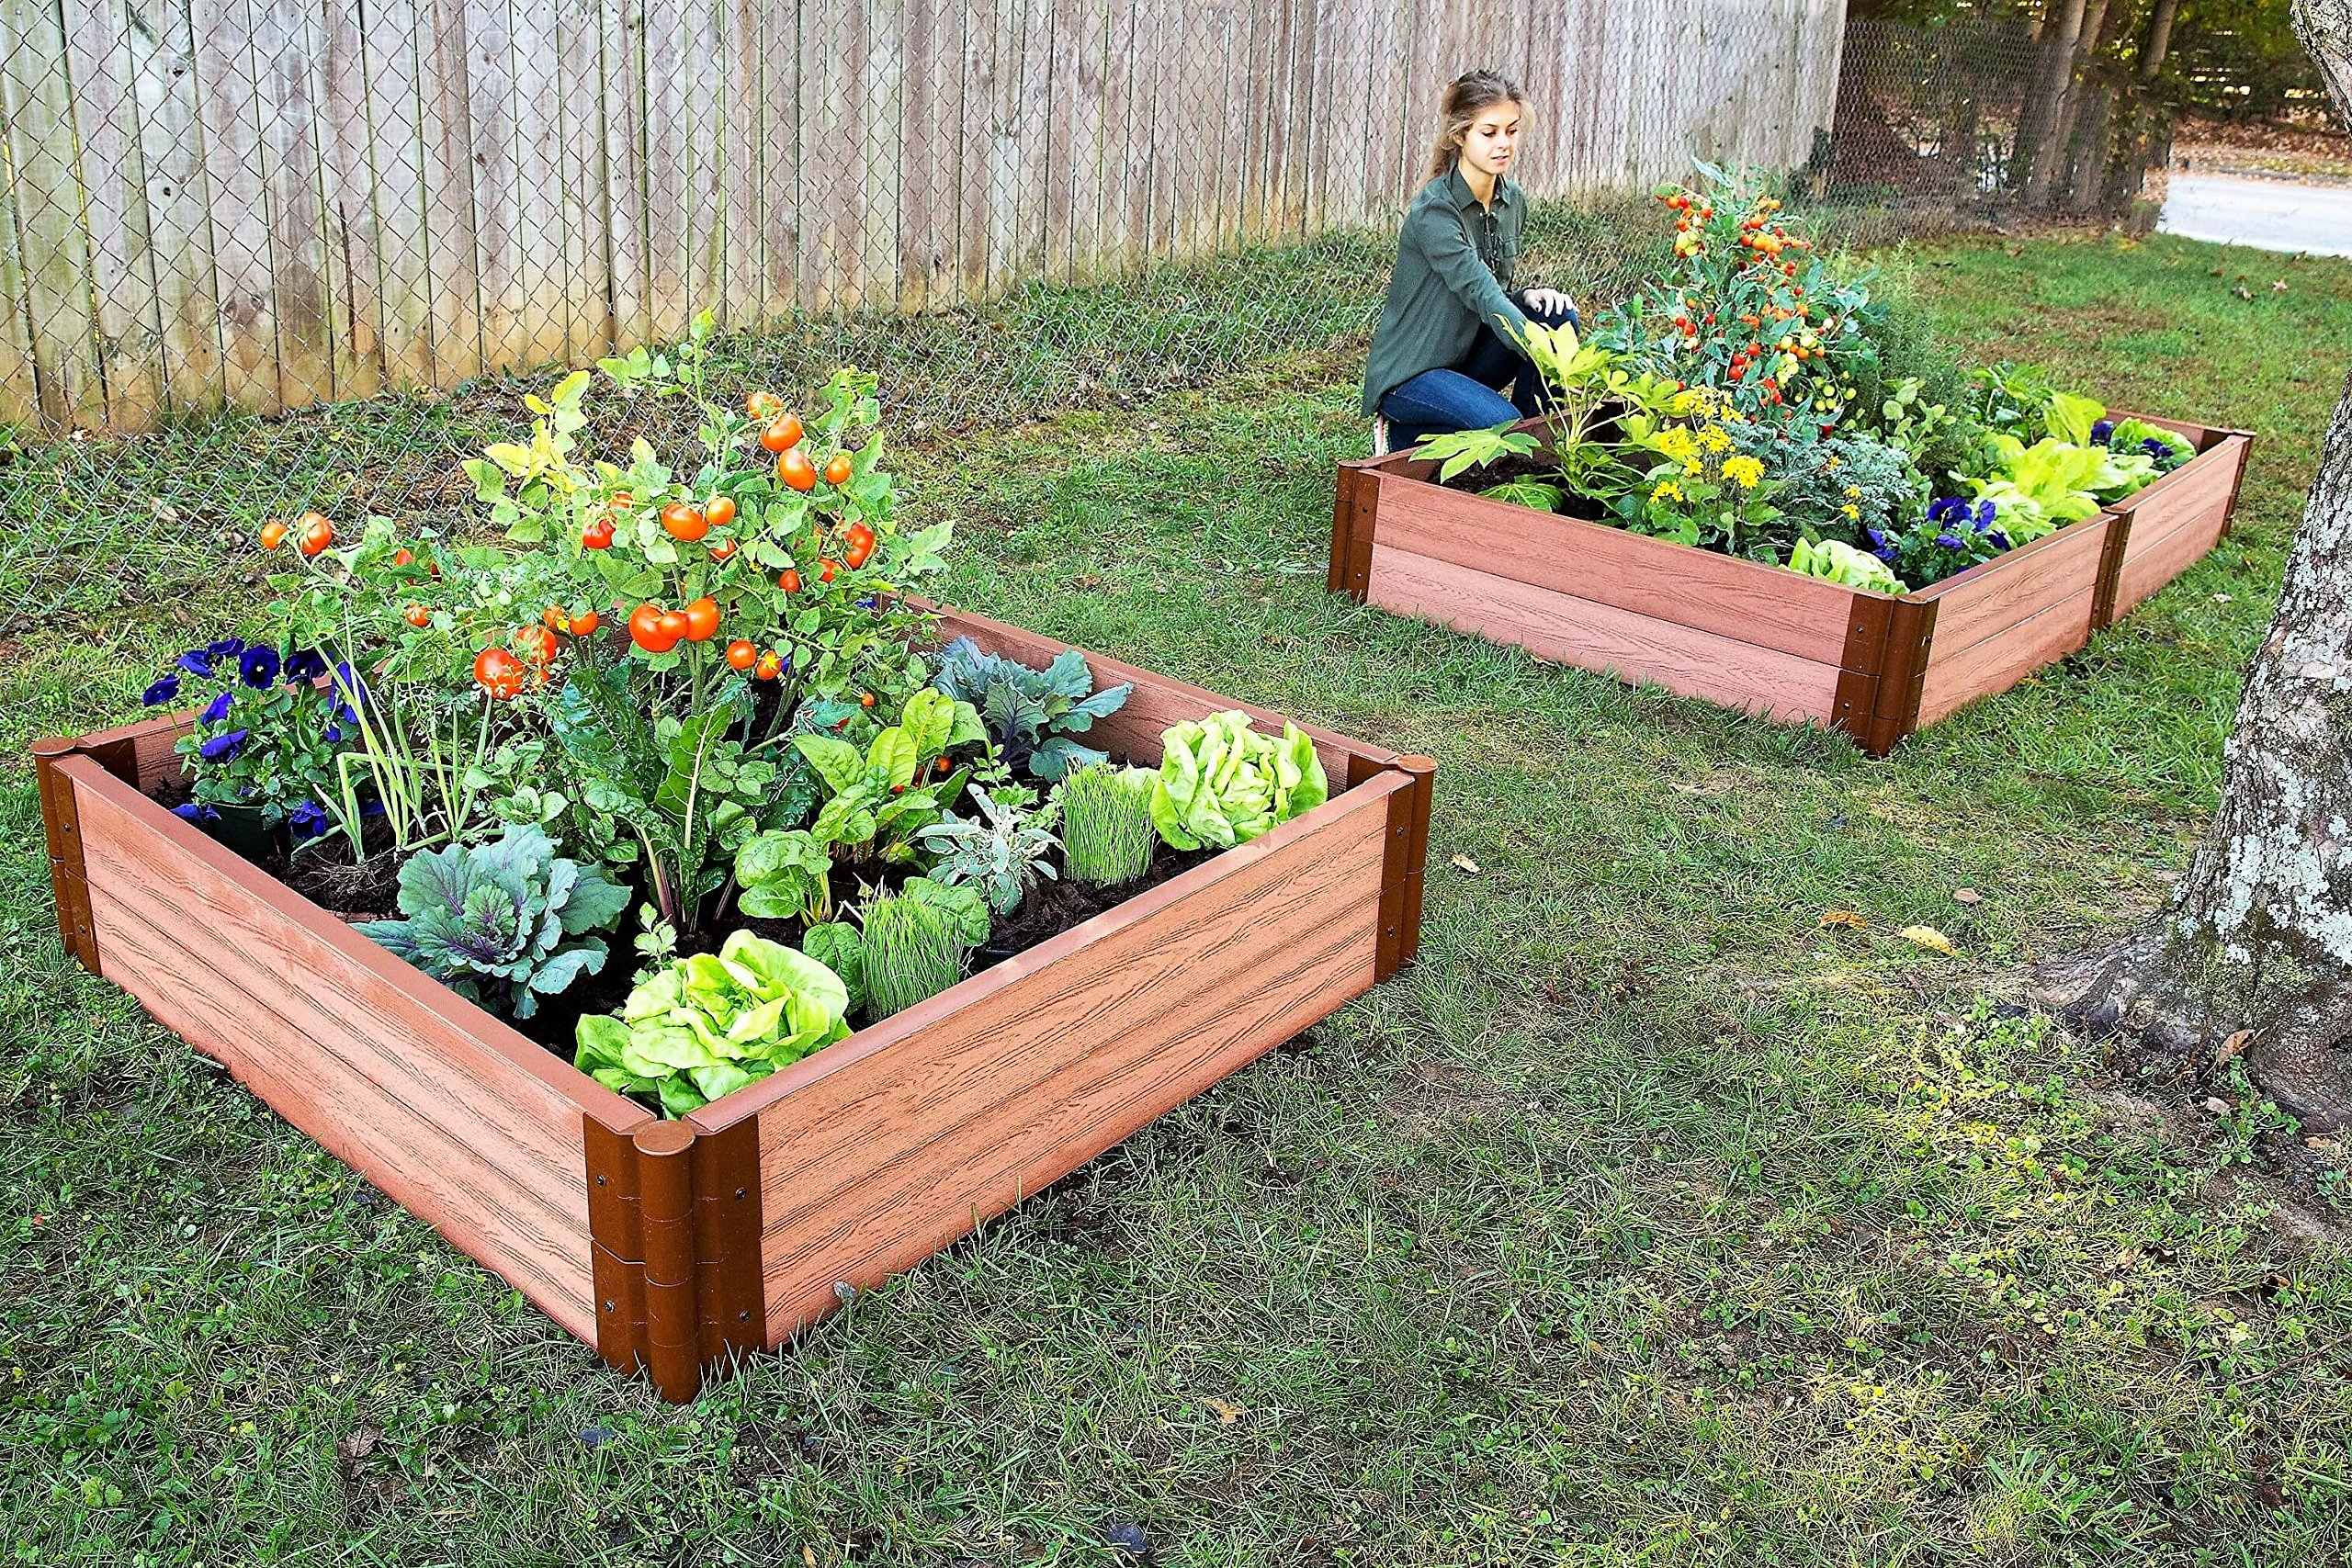 Frame It All Composite Raised Garden Bed Kit, 4' by 4' by 11'' by Frame It All (Image #4)